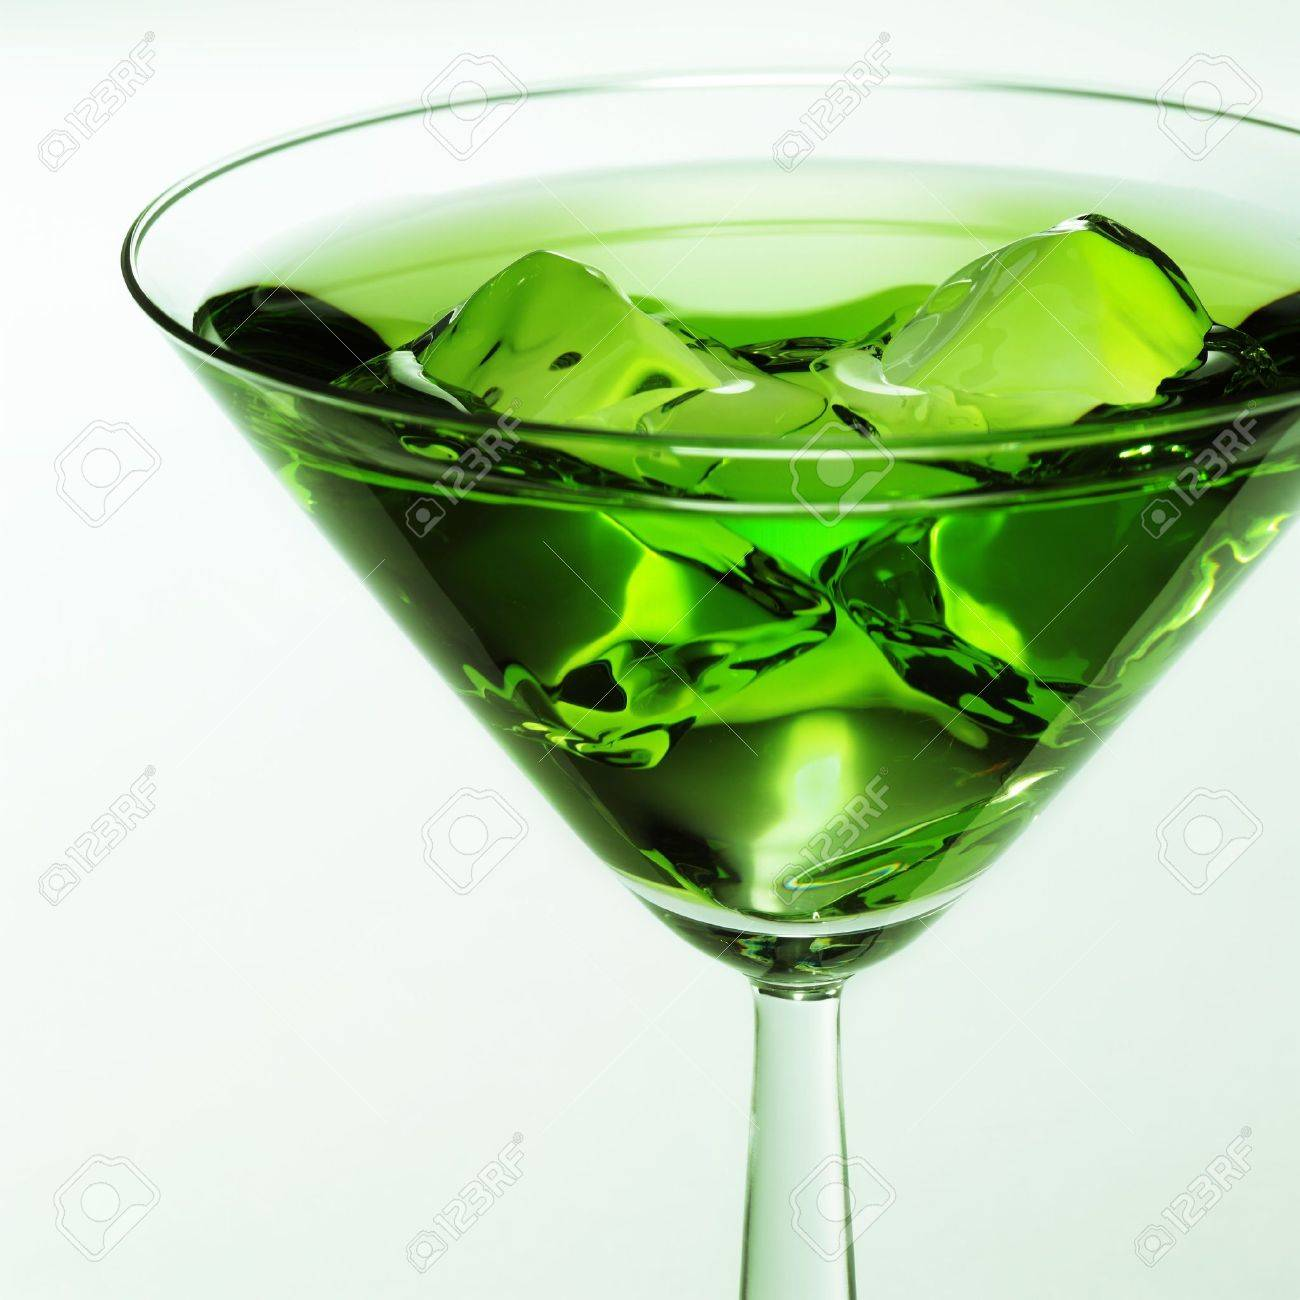 Coctail glass with green liquid Stock Photo - 5847184